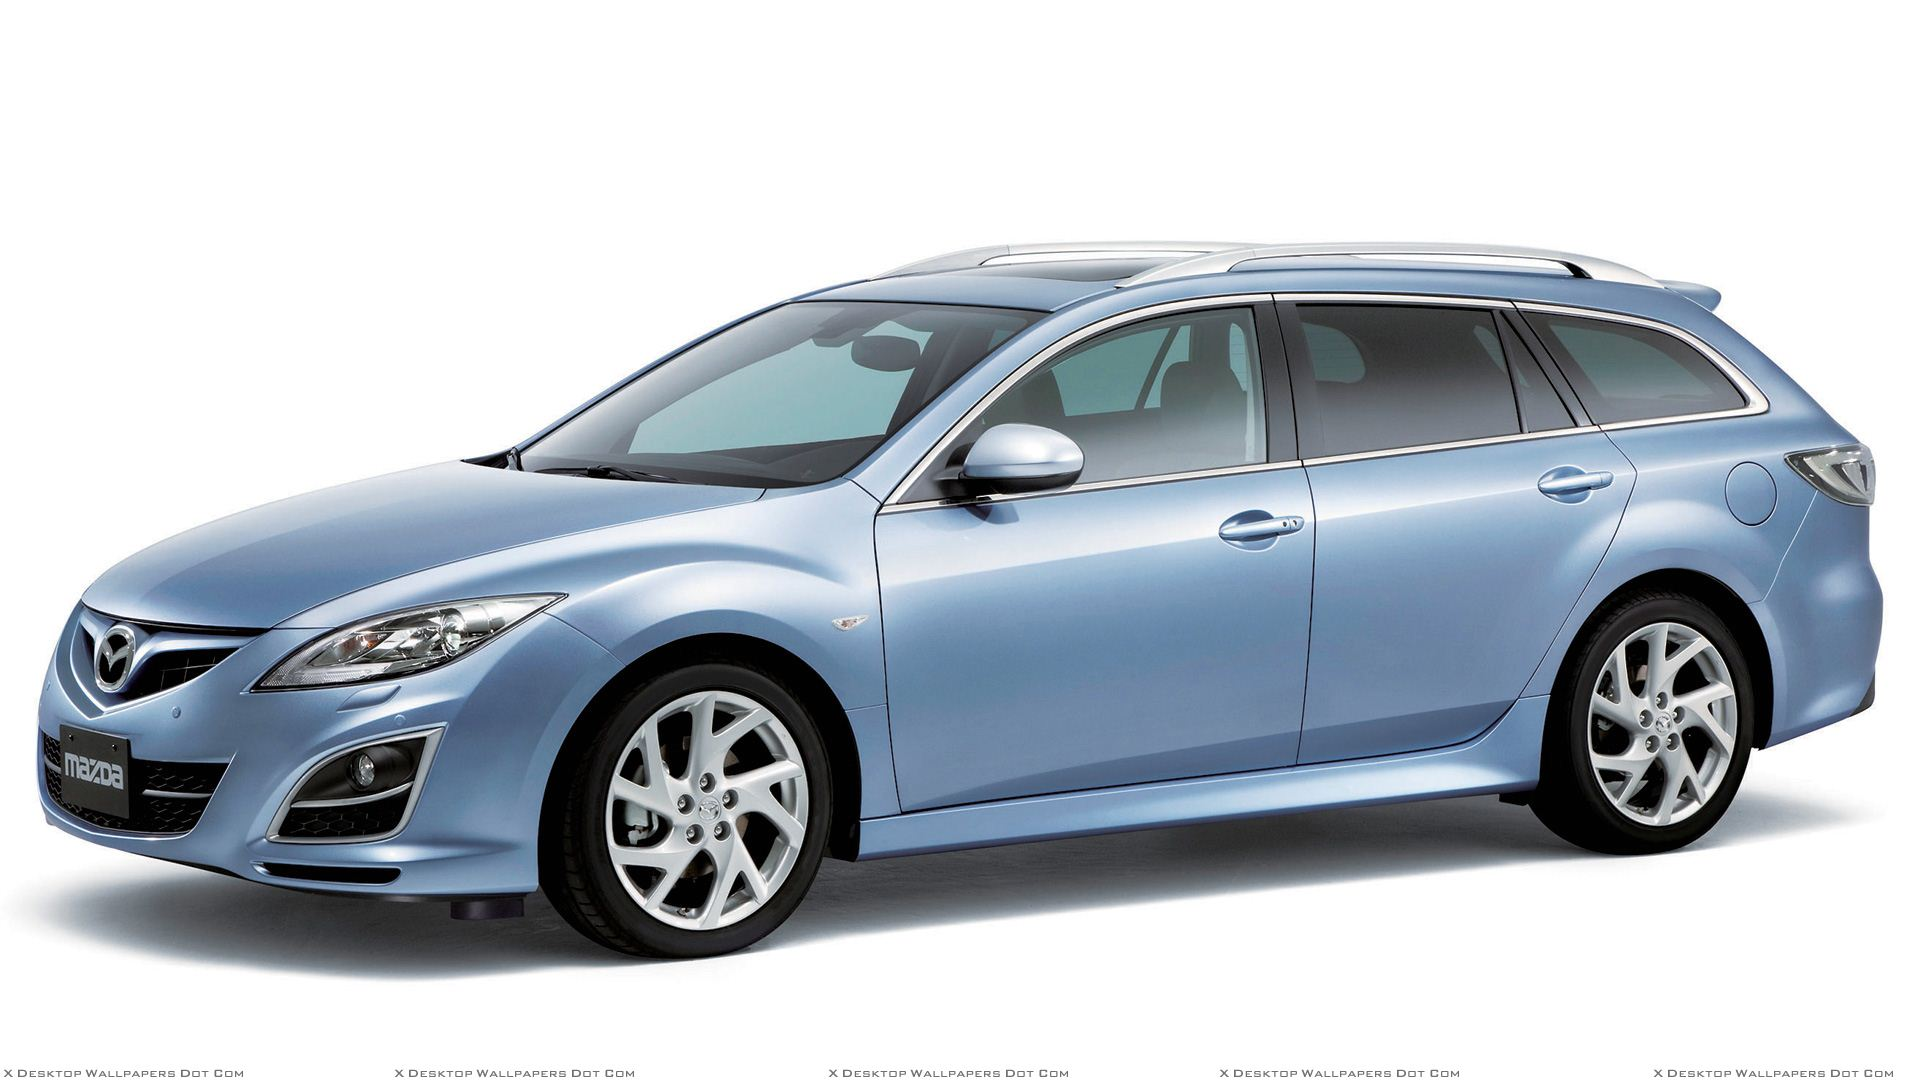 http://xdesktopwallpapers.com/wp-content/uploads/2012/04/2008%20Mazda%206%20Wagon%20In%20Blue%20Side%20Pose.jpg